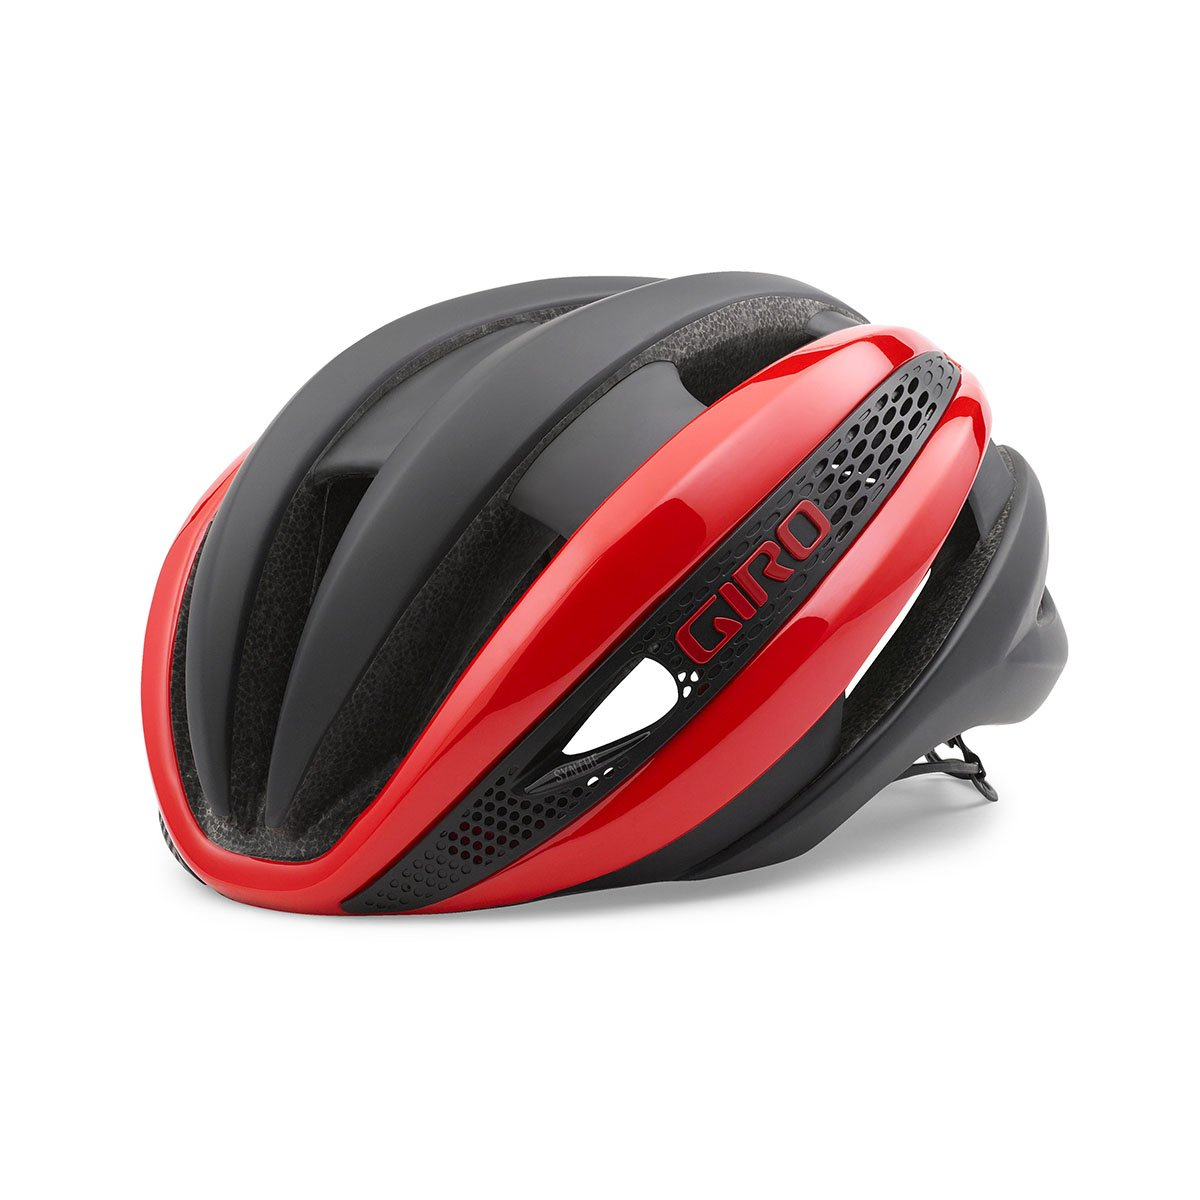 3 Sizes Giro Foray Road Cycle Bicycle Bike Helmet Bright Red//Black